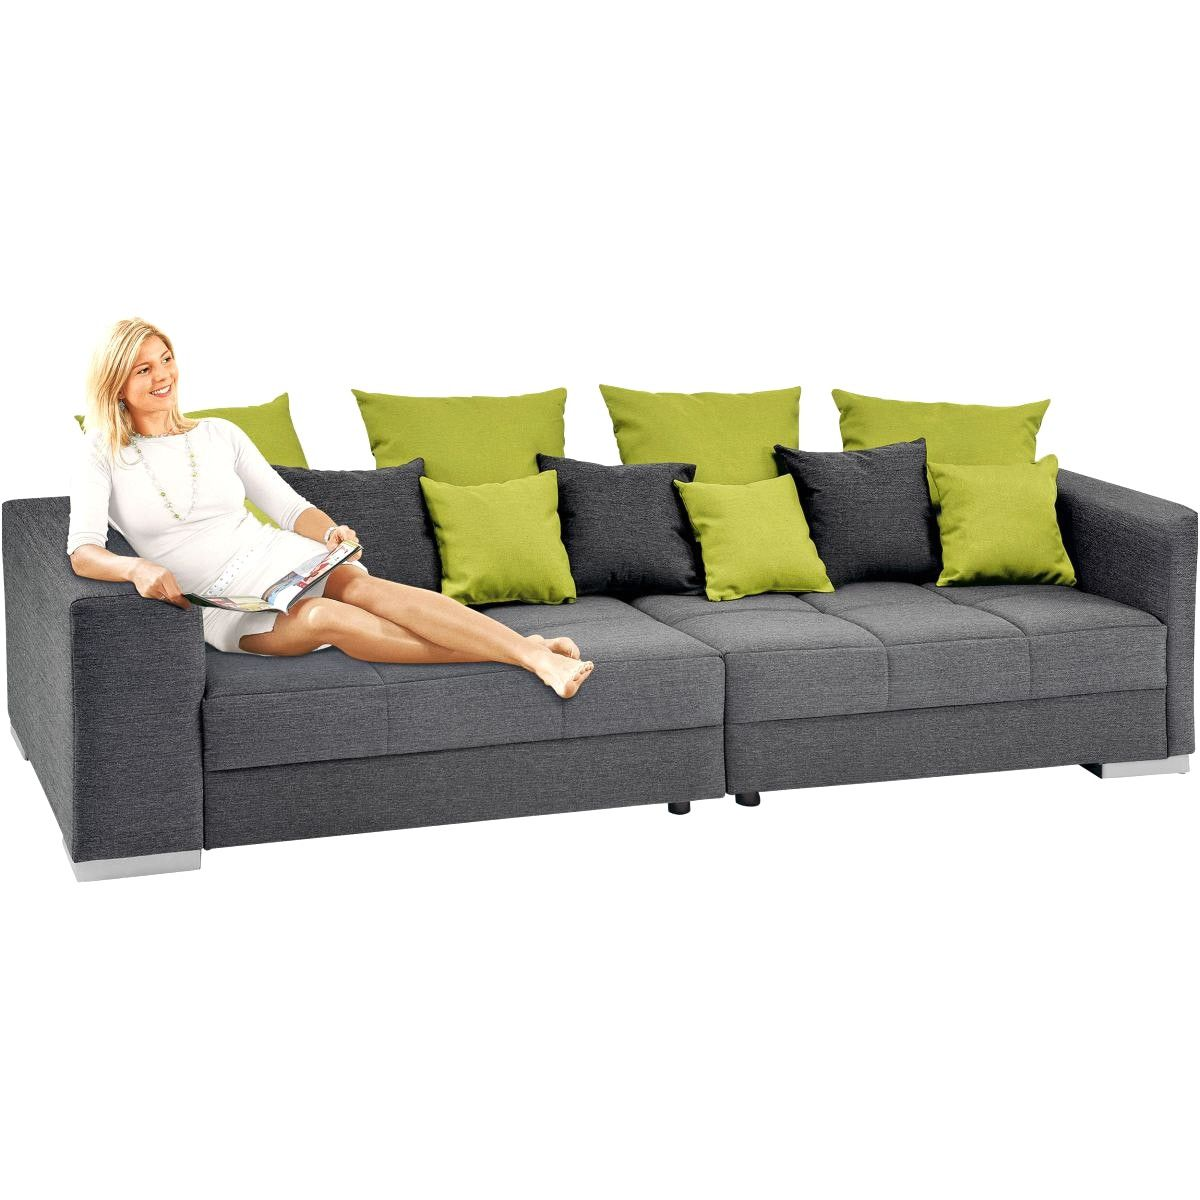 Couch U Form Grau Perfect Sofa U Form Grau | Sofa, Big Sofas, Sofa Furniture